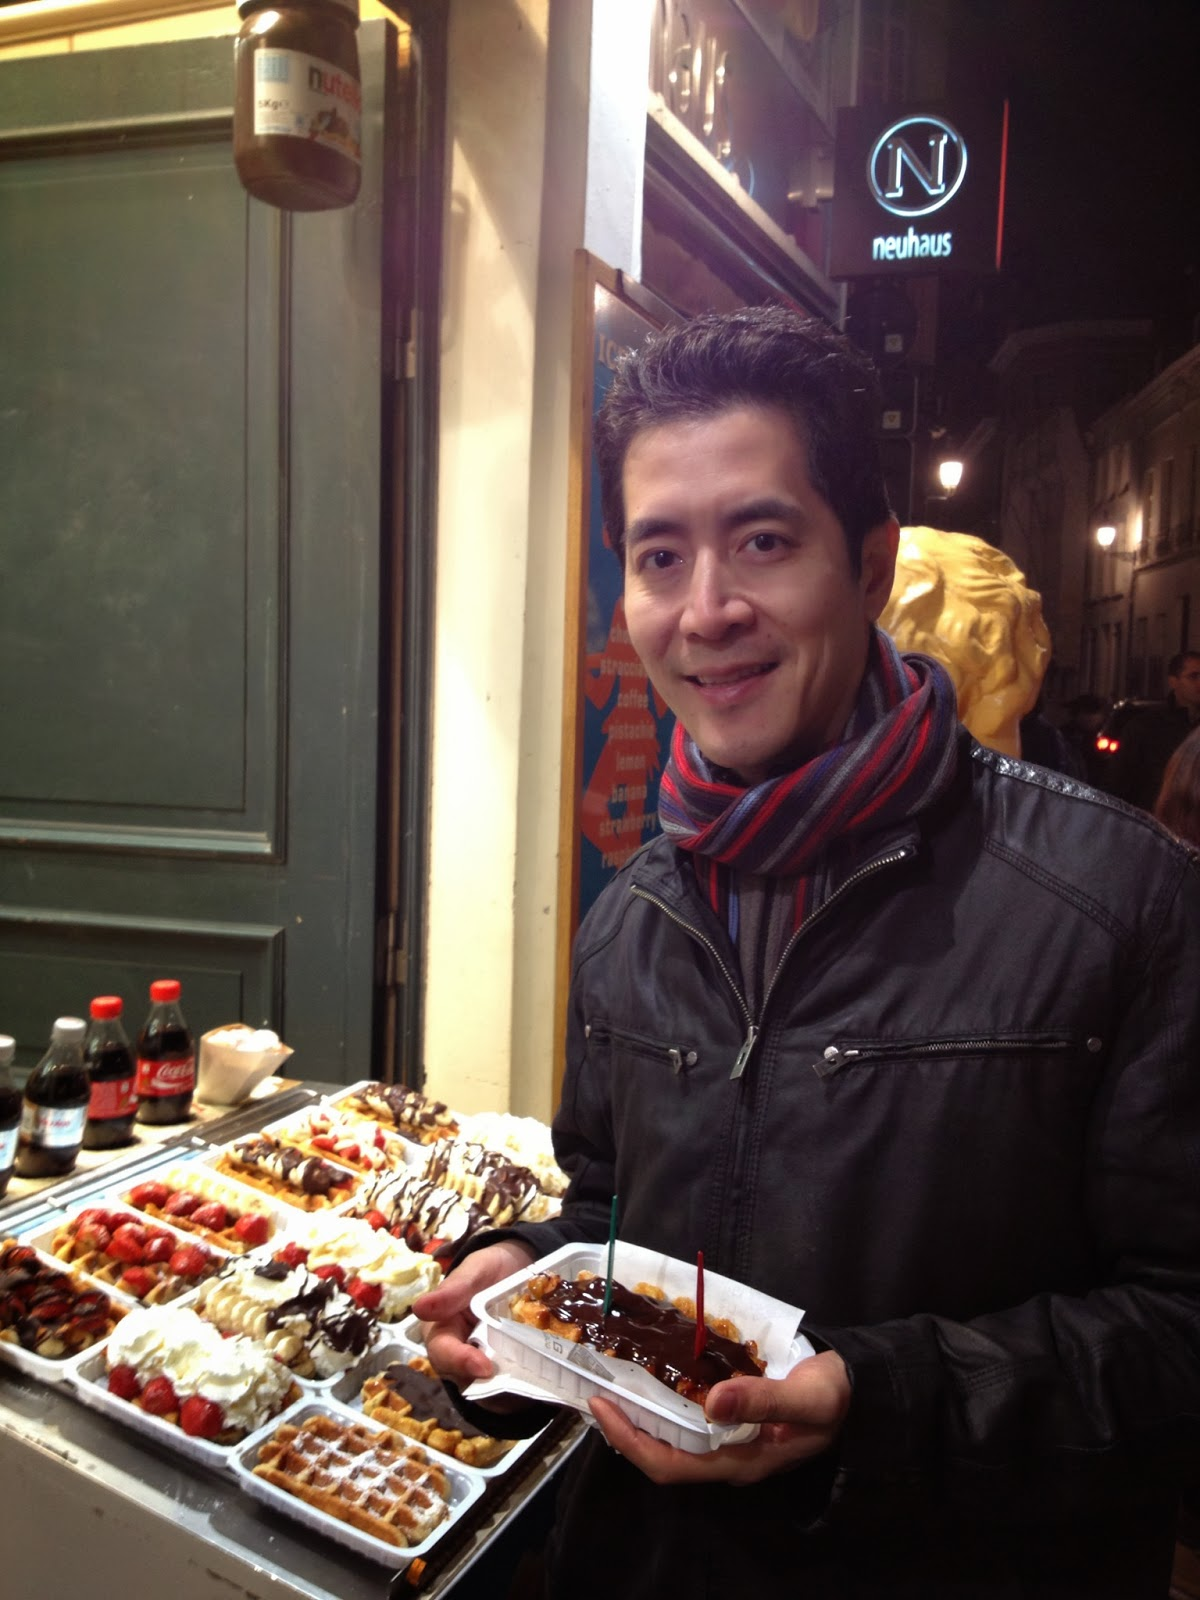 Brussels - Mike goes for waffle #2